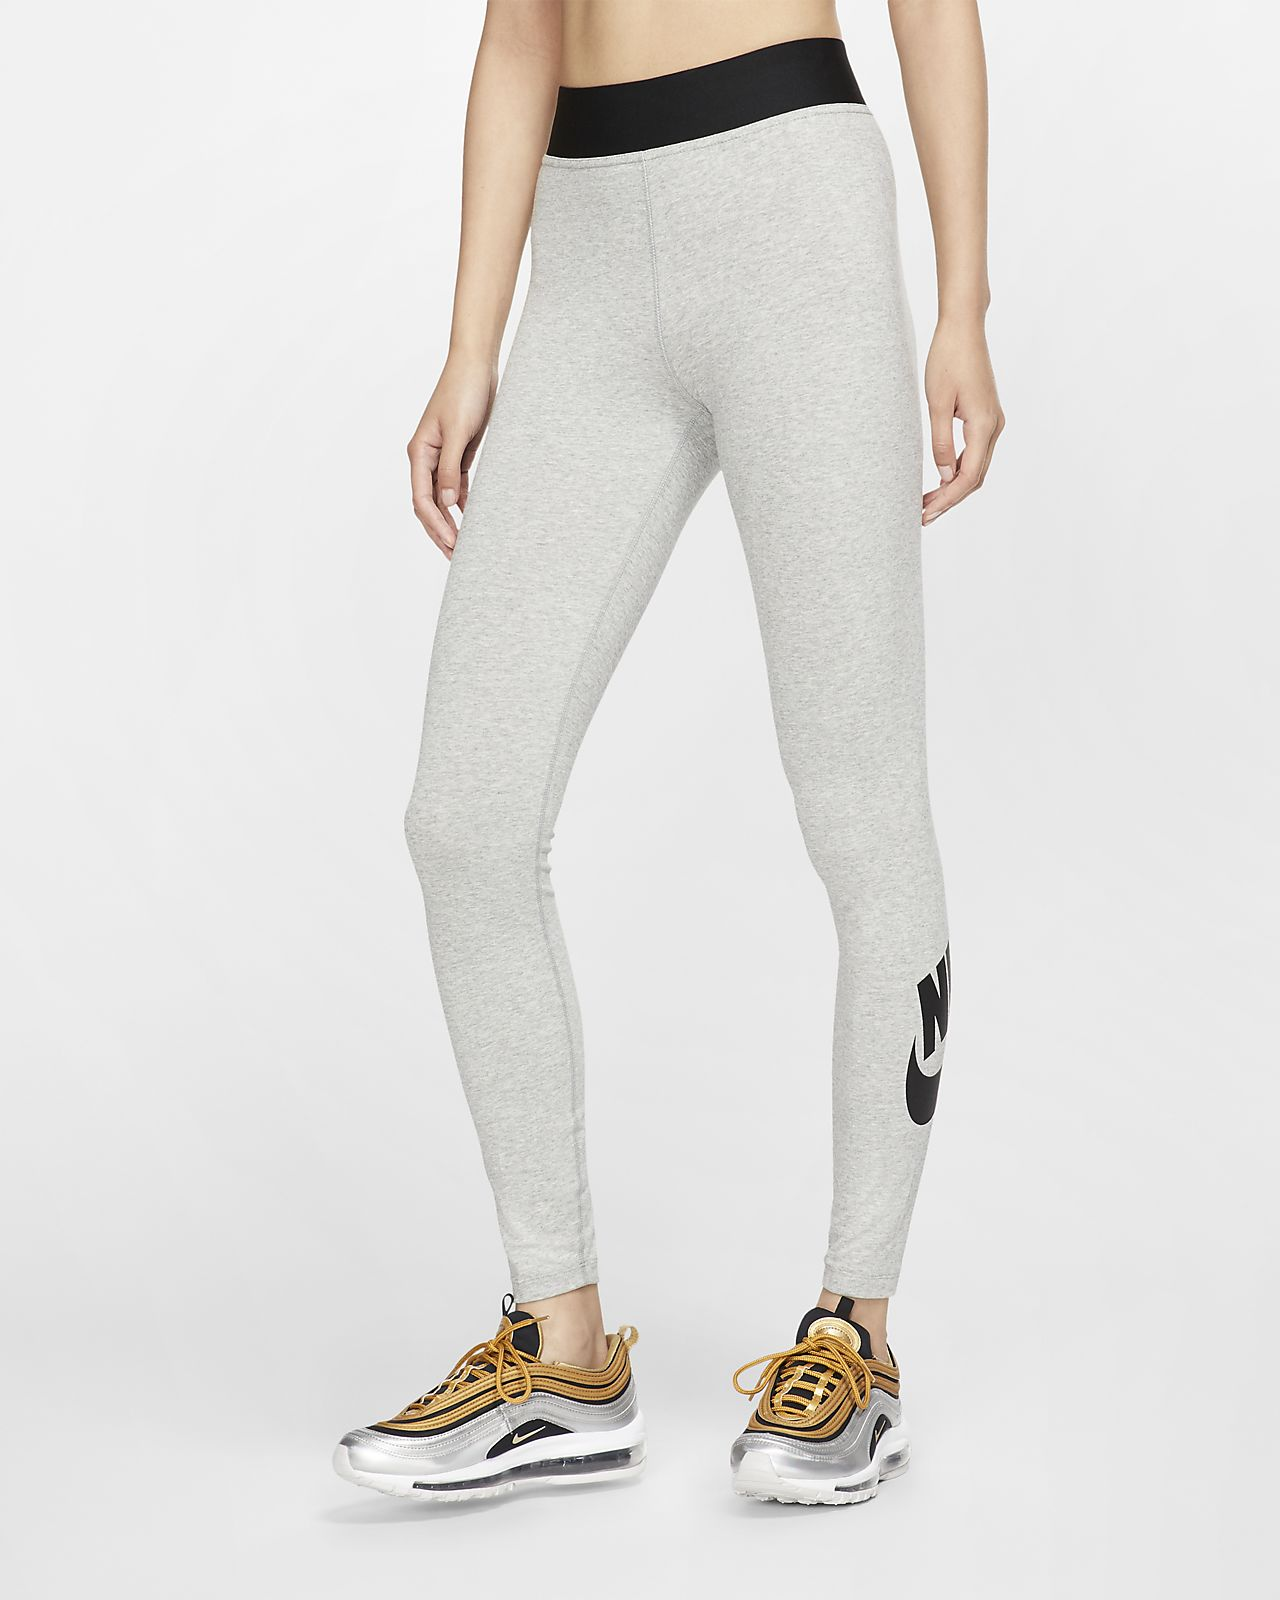 Nike Sportswear Leg-A-See Women's High-Waisted Leggings